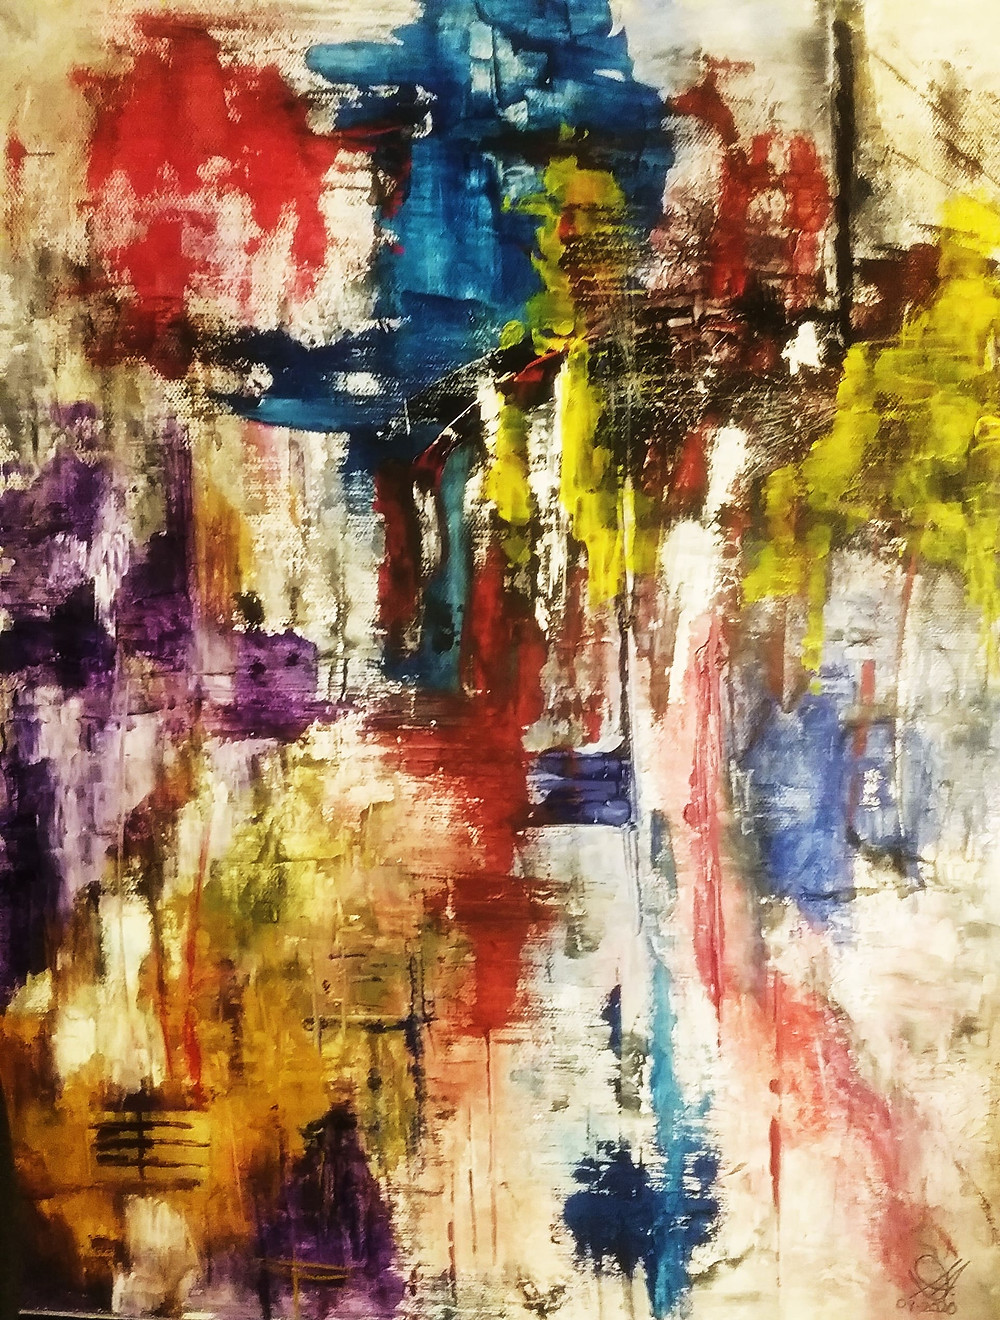 Several layers of oil paint to create abstract painting